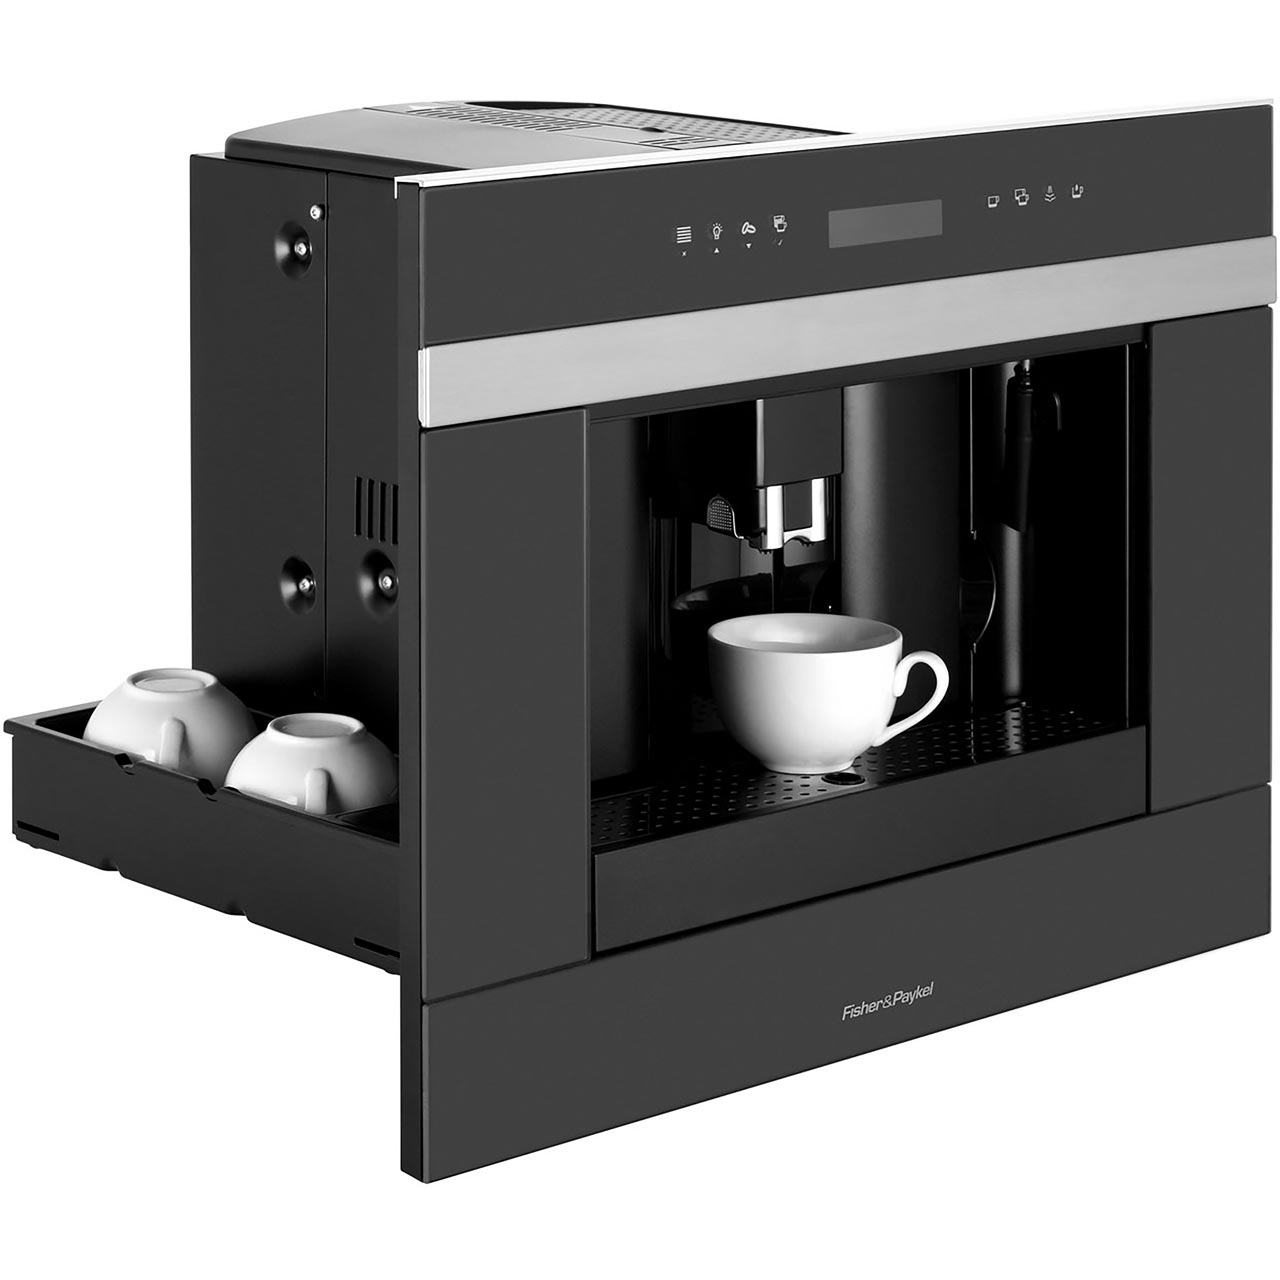 Fisher Paykel Designer Companion Eb60dsxb1 Built In Bean To Cup Coffee Machine Black